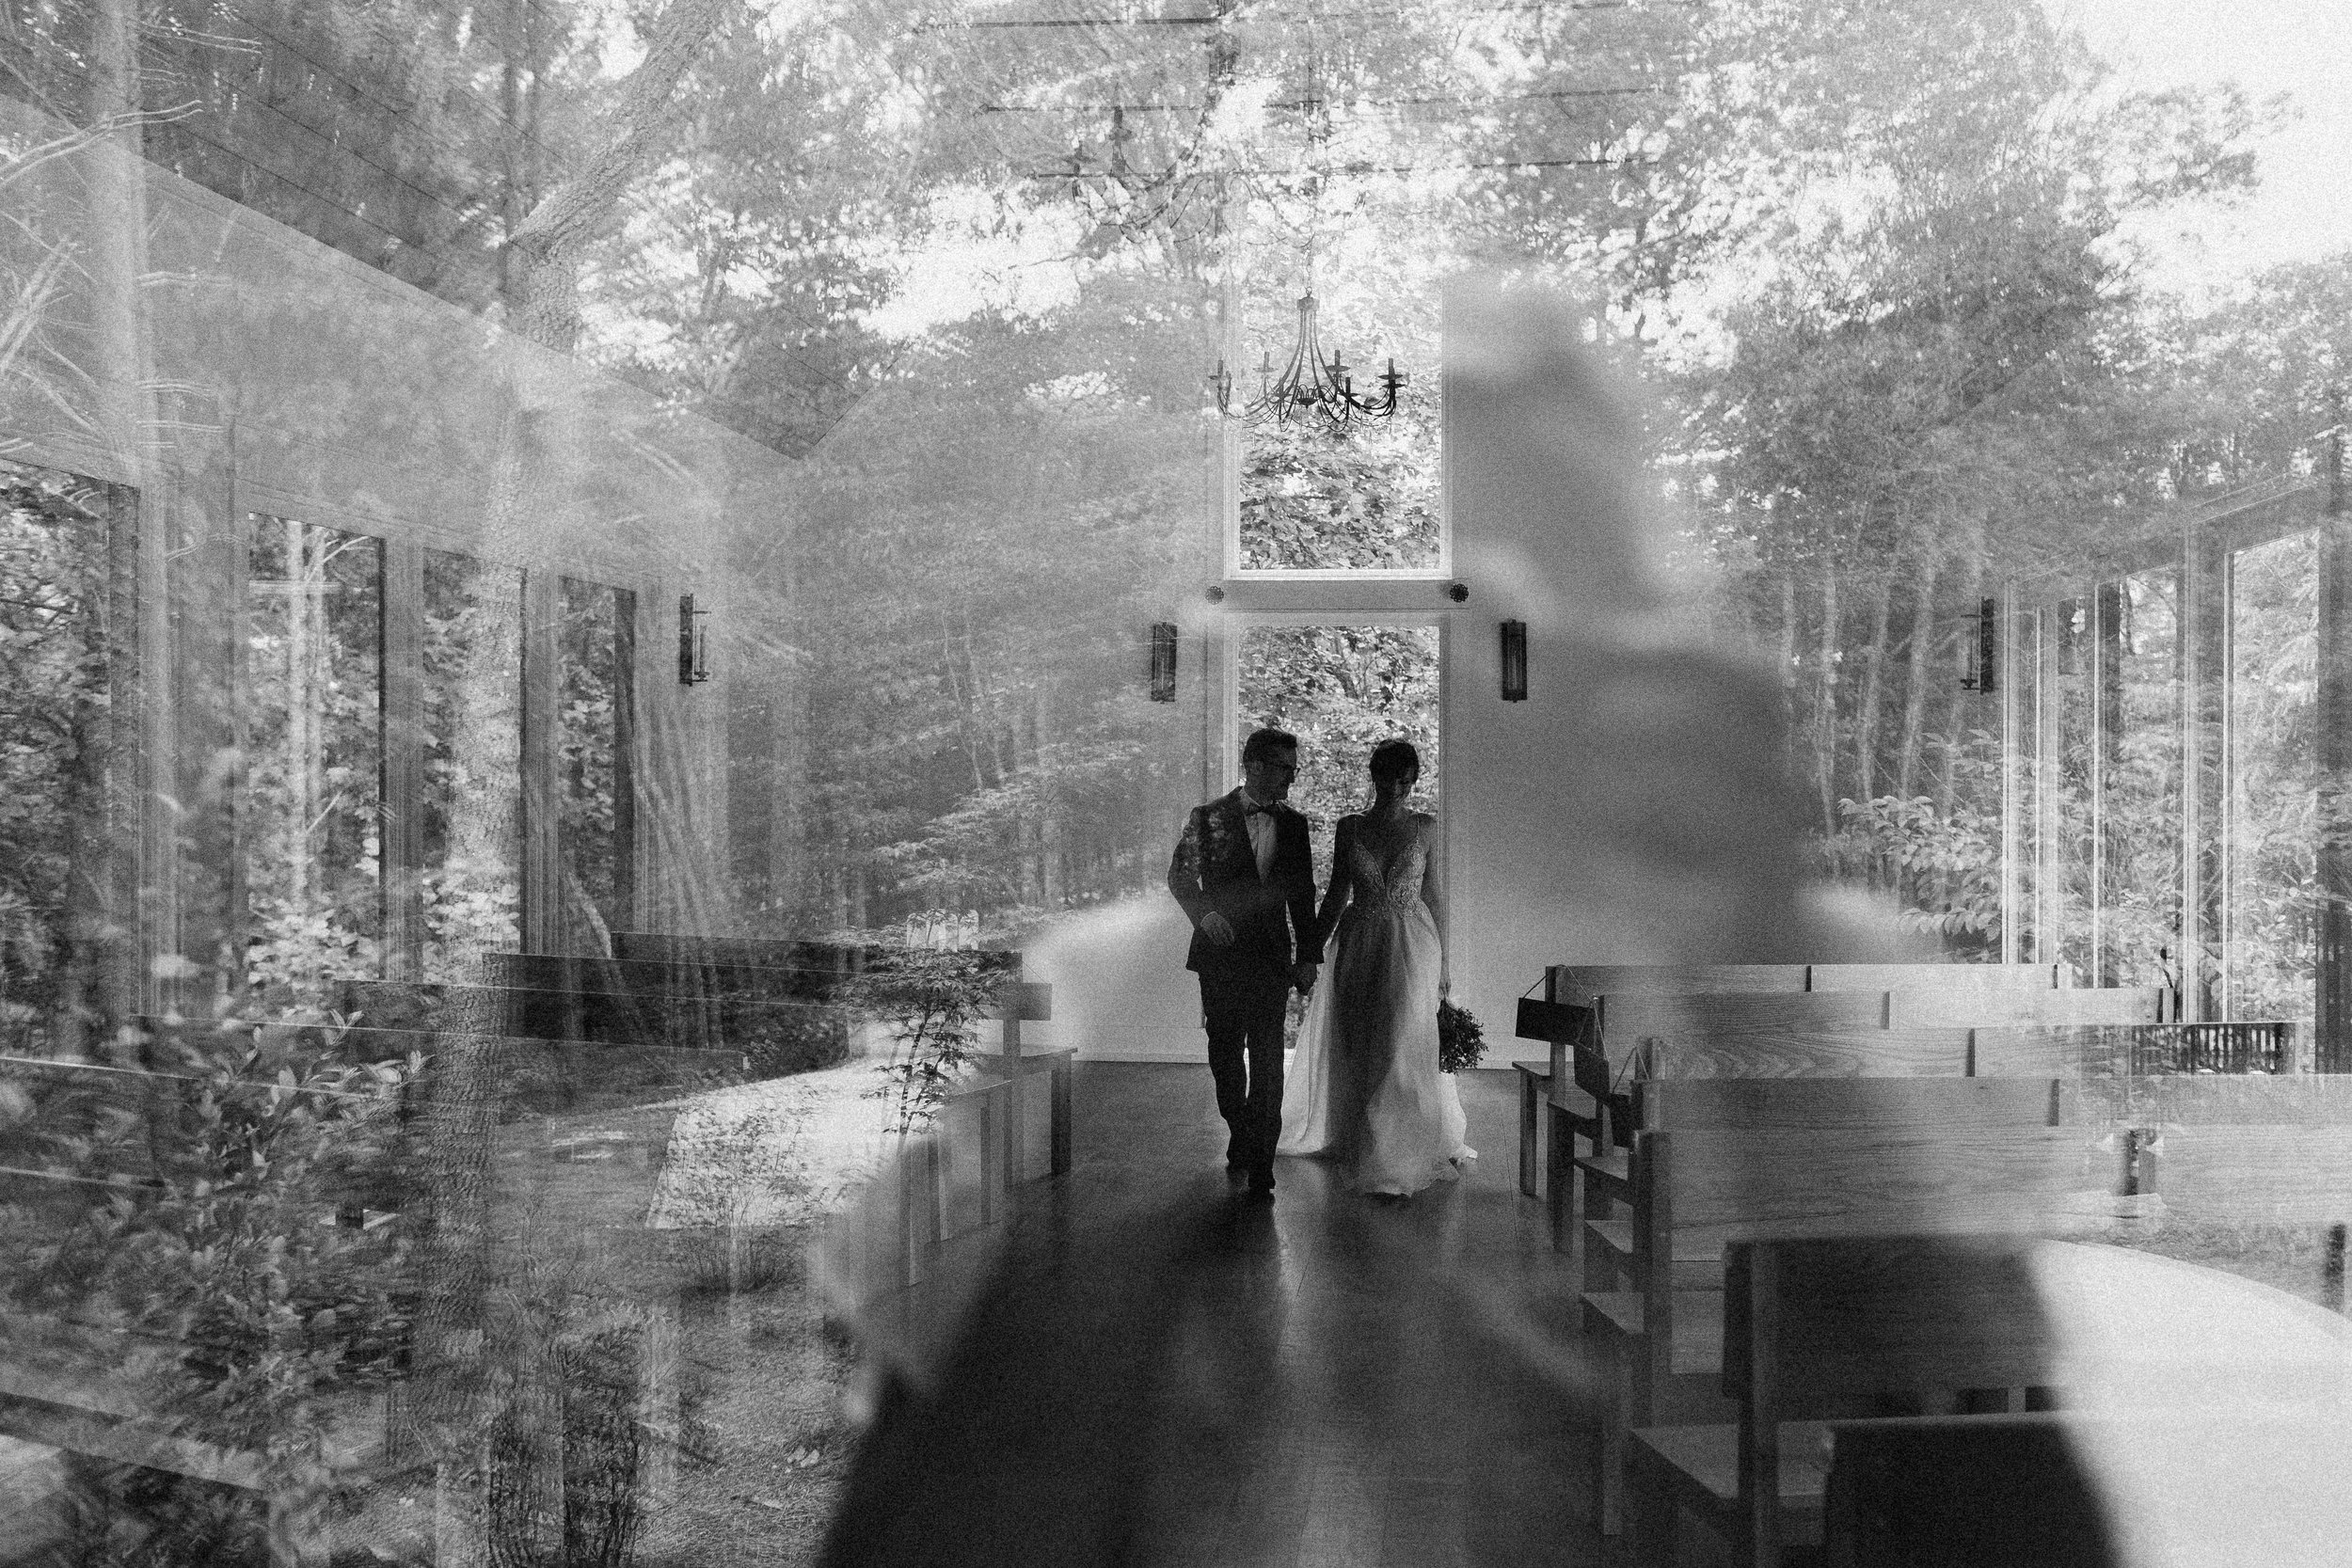 dahlonega_juliette_chapel_photojournalism_atlanta_wedding_photographers_1359.jpg